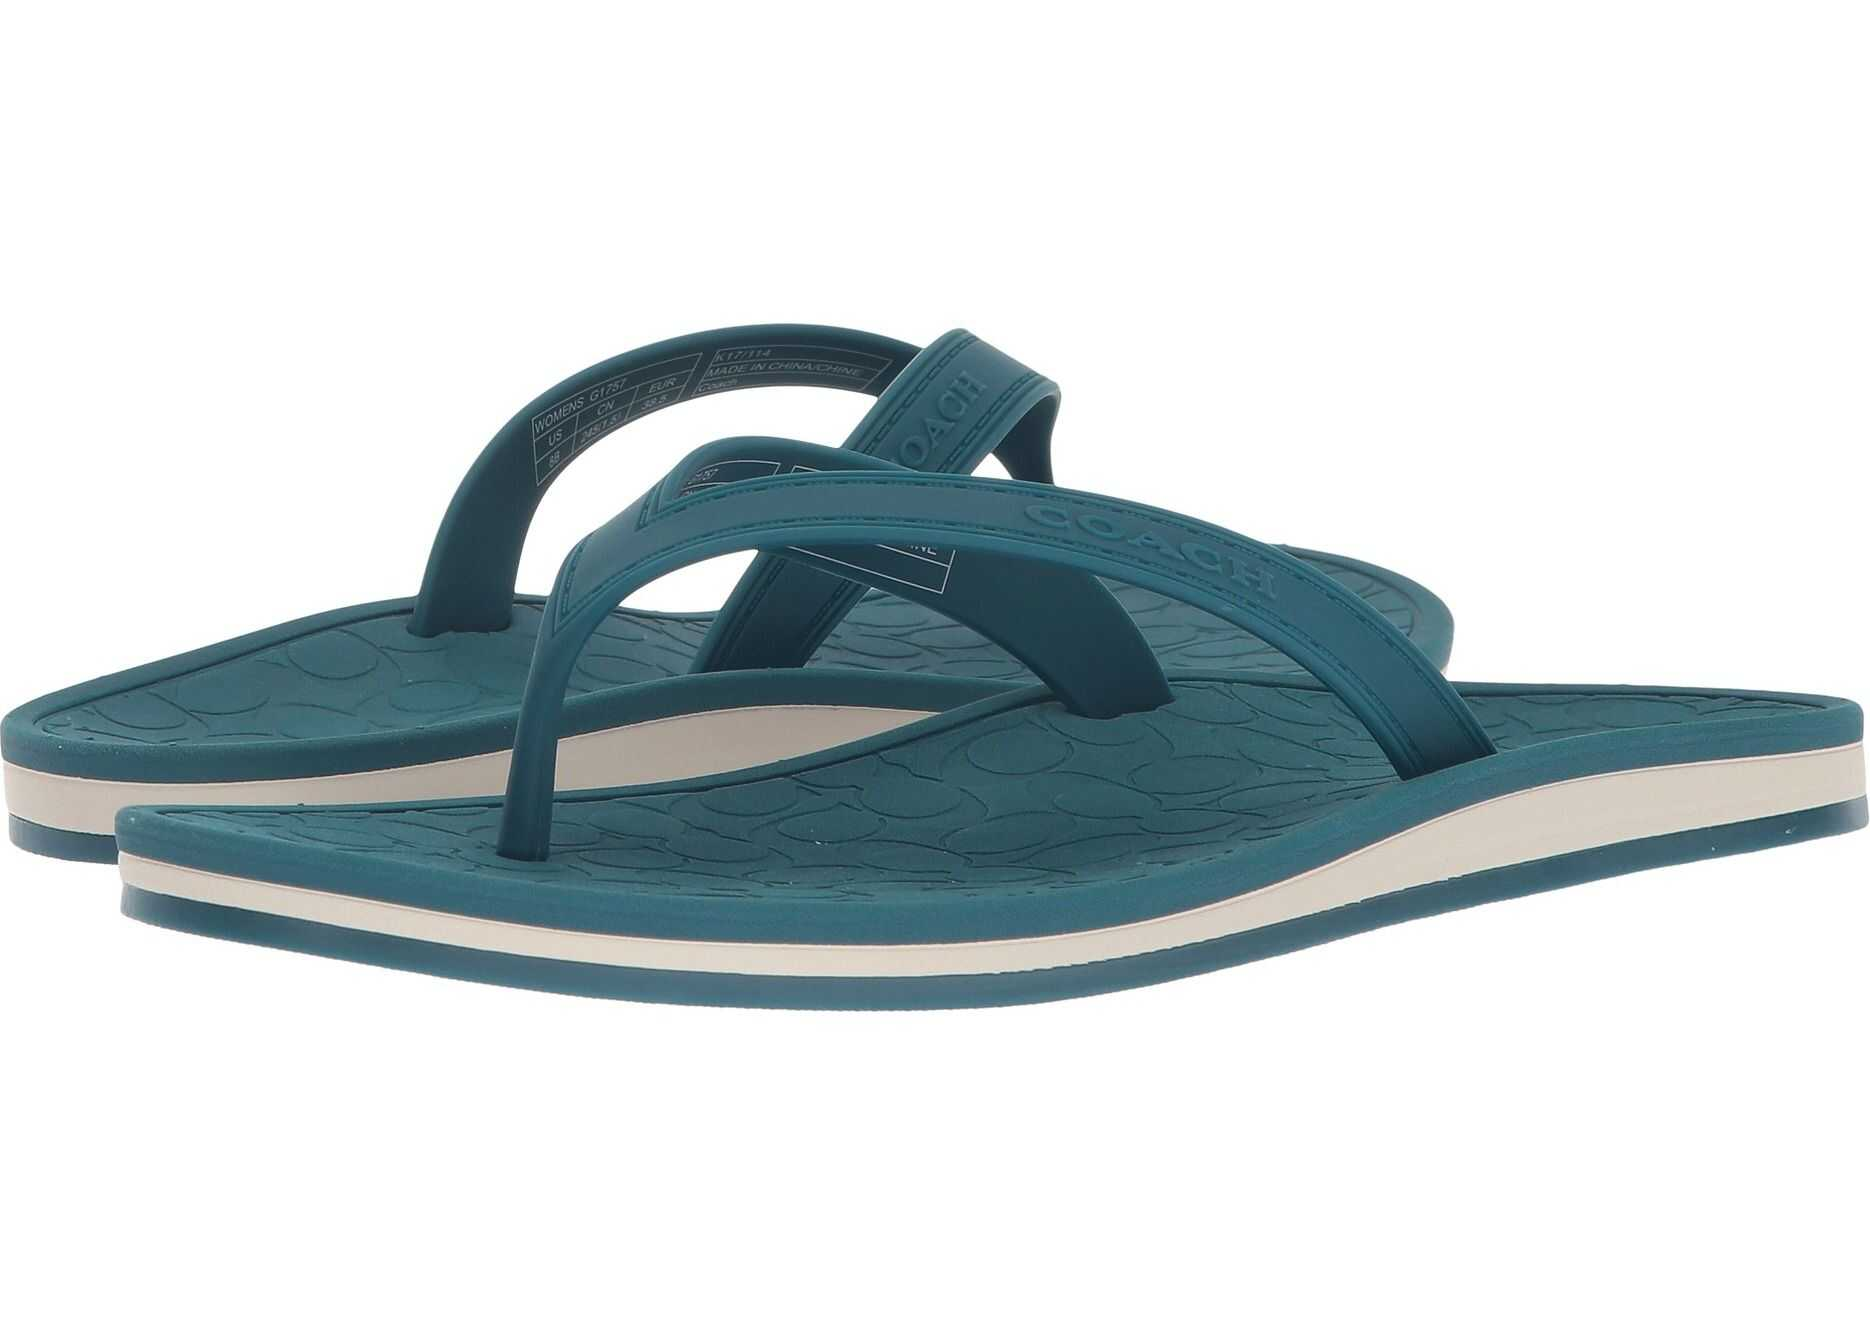 COACH Flip-Flop Dark Teal Rubber